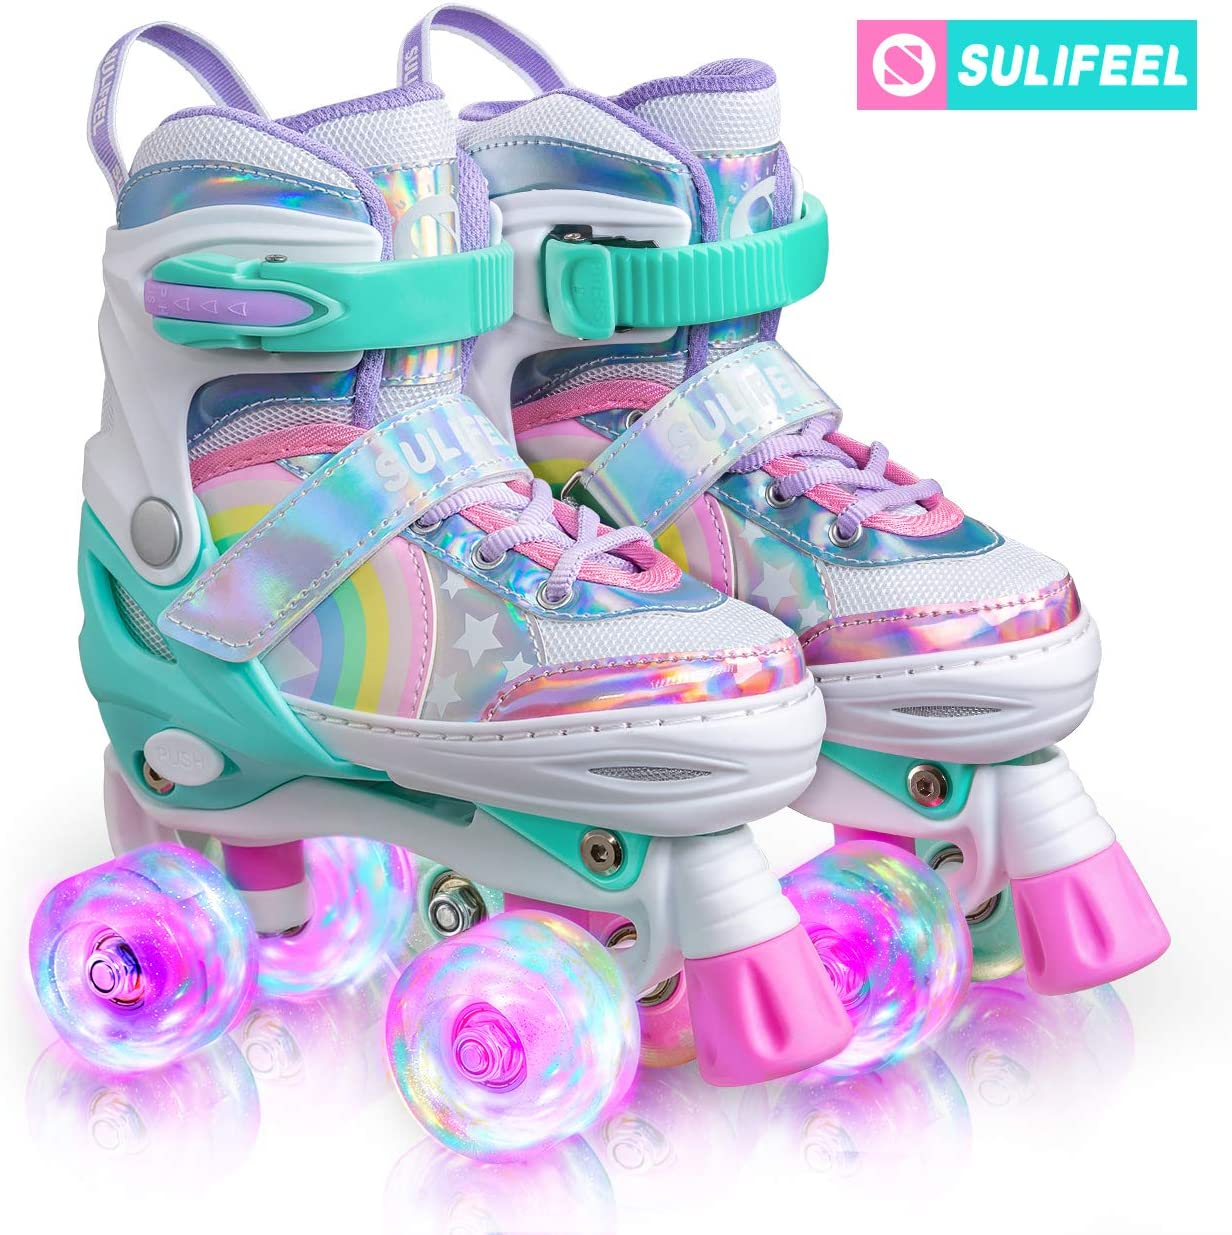 SULIFEEL Rainbow Unicorn 4 Size Adjustable Light up Roller Skates for Girls Boys and Kids